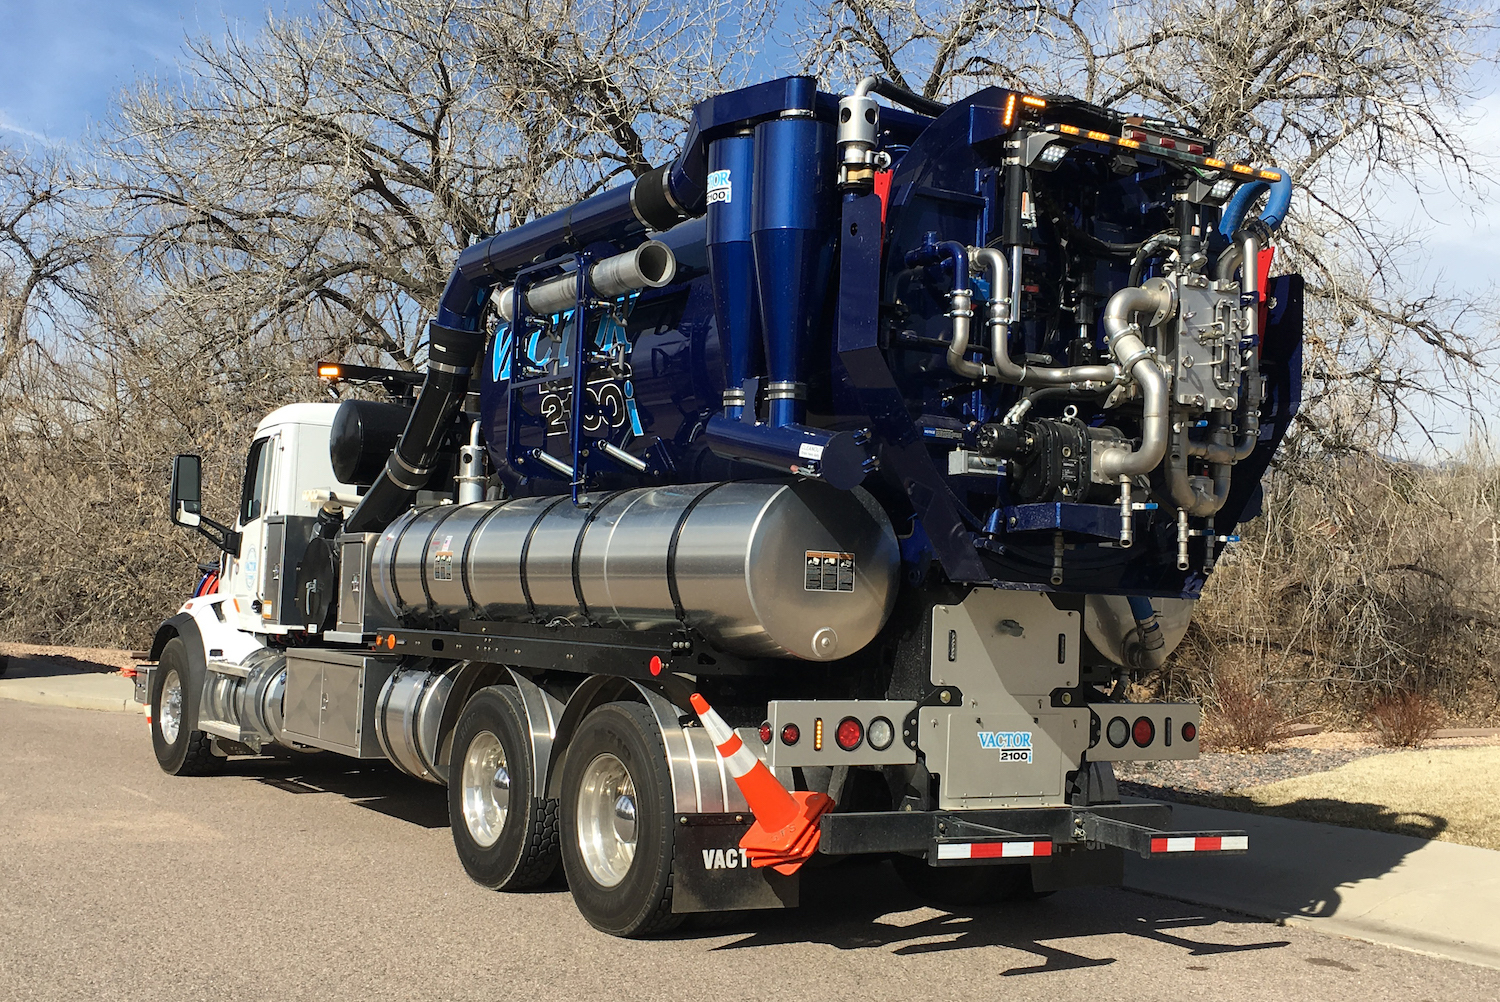 A combination sewer cleaner equipped with a water recycling system offers a number of benefits, including increased productivity and safety for work crews, reduced downtime, and cleaner lines.